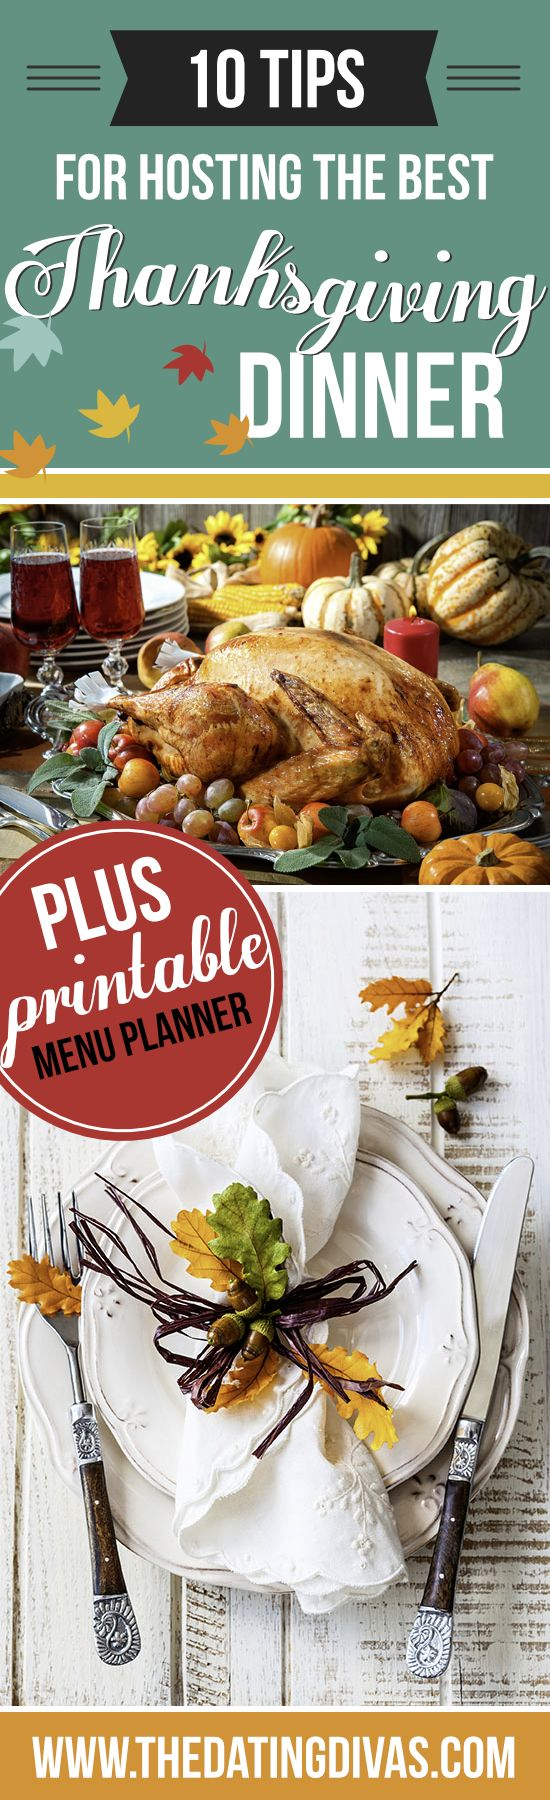 You'll wow all your guests and stay organized with our Thanksgiving meal planner! Get ready for the BEST Thanksgiving dinner EVER!